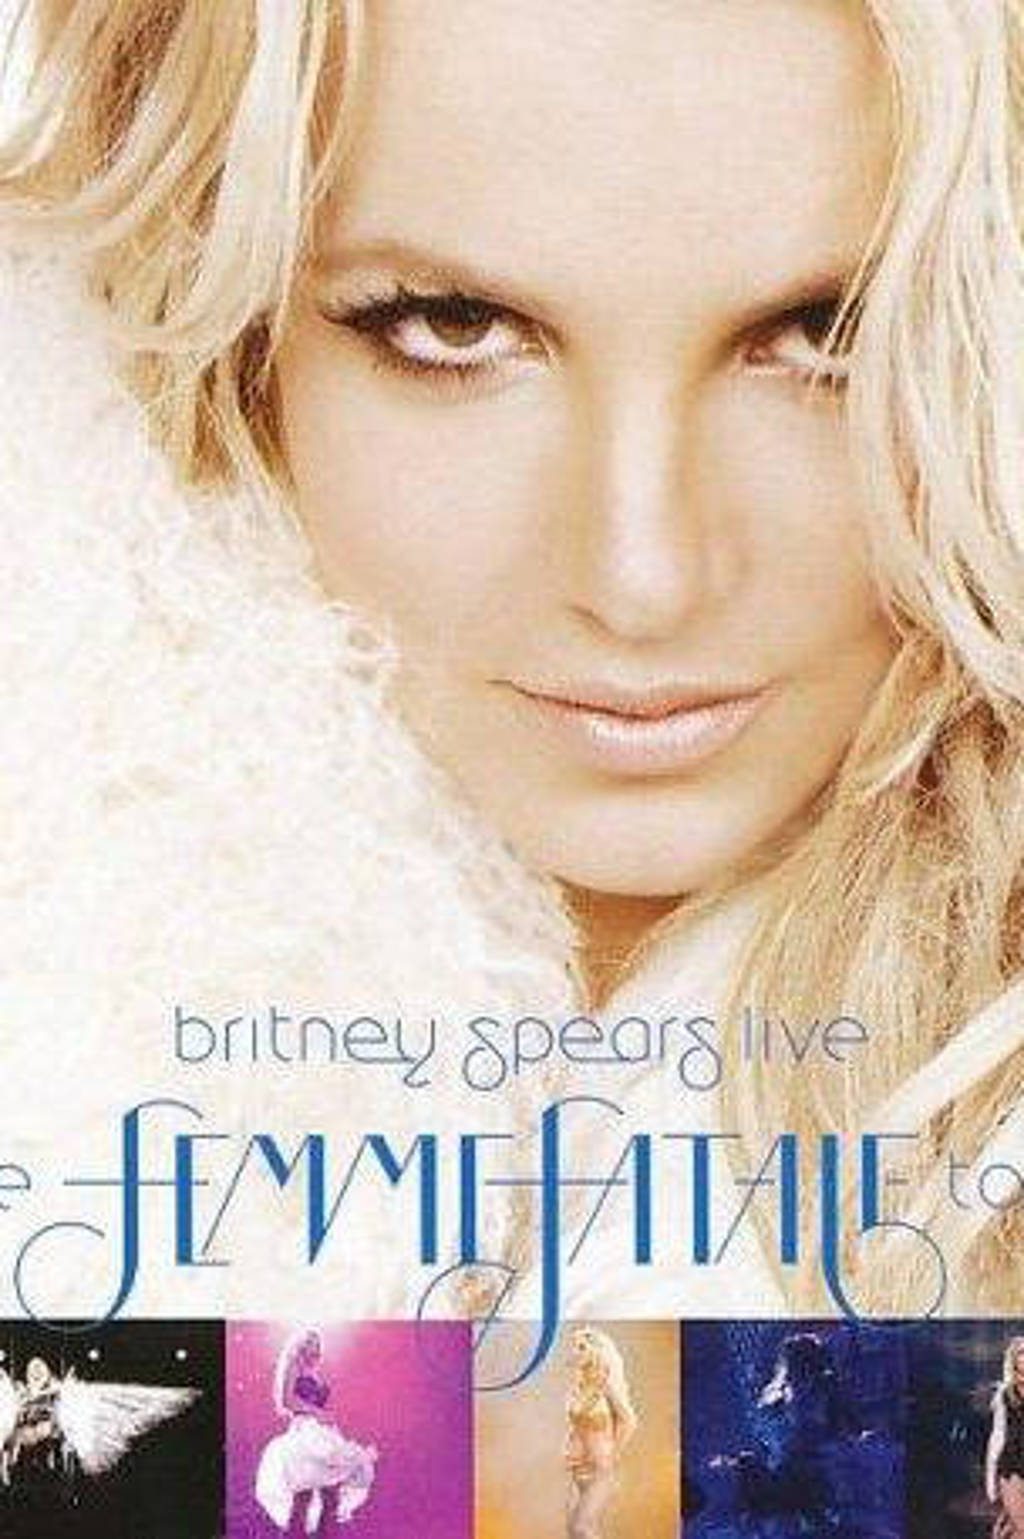 Britney Spears - Britney Spears Live: The Femme (Blu-ray)